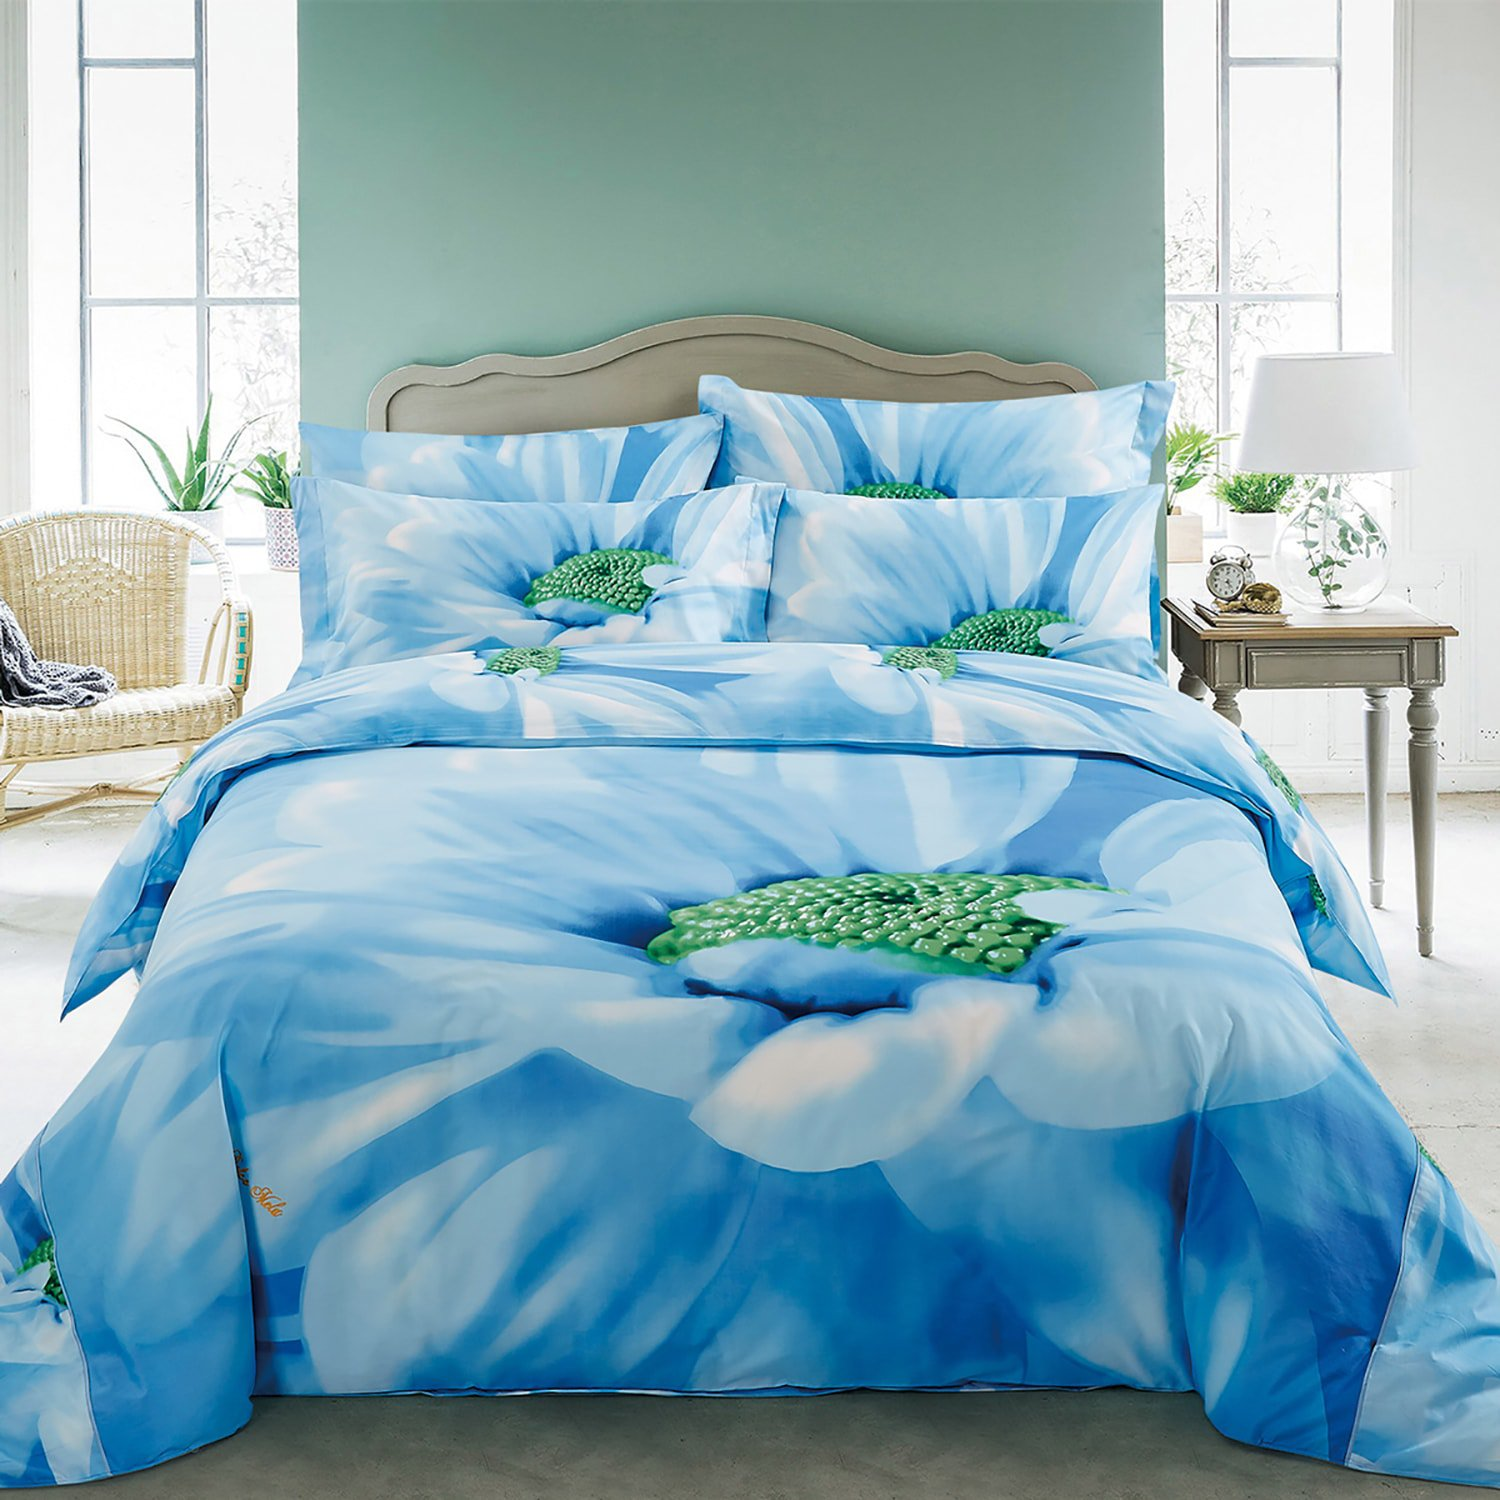 Azure By Dolce Mela Bedding Luxury Floral Cotton King Size